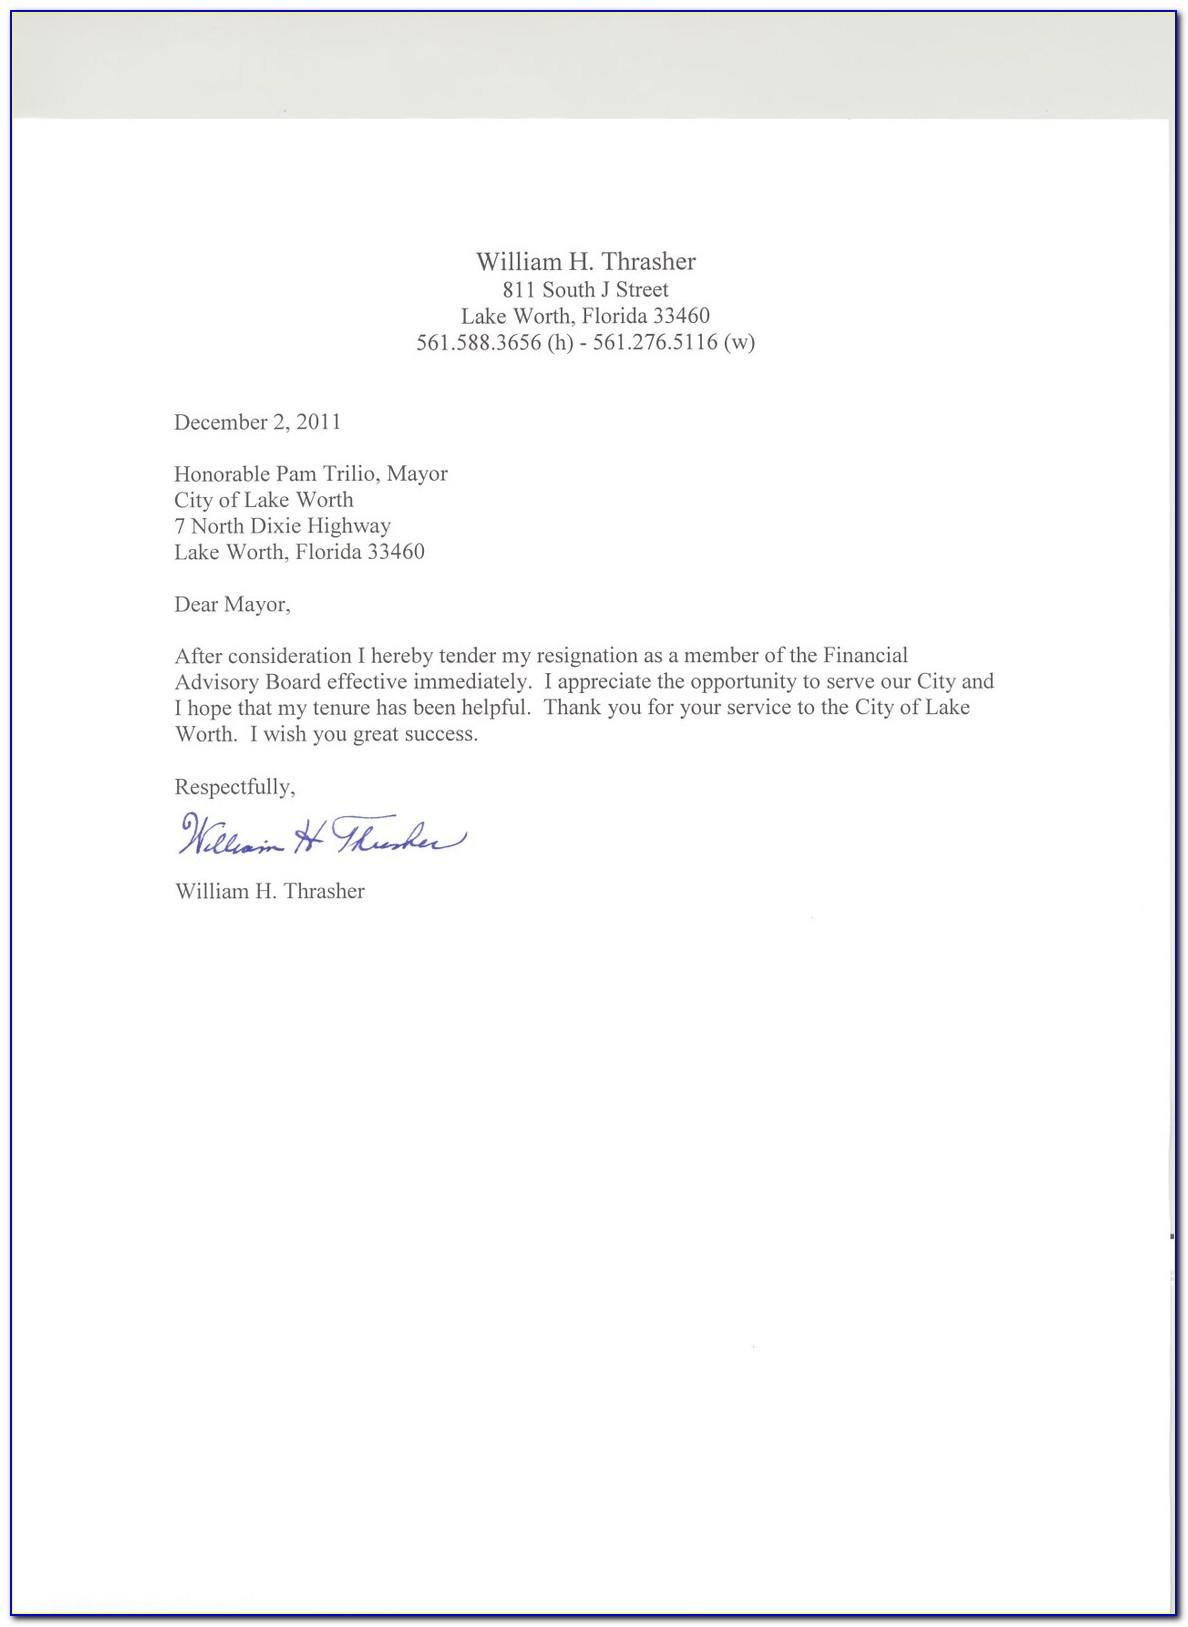 Retirement Resignation Letter Template Free